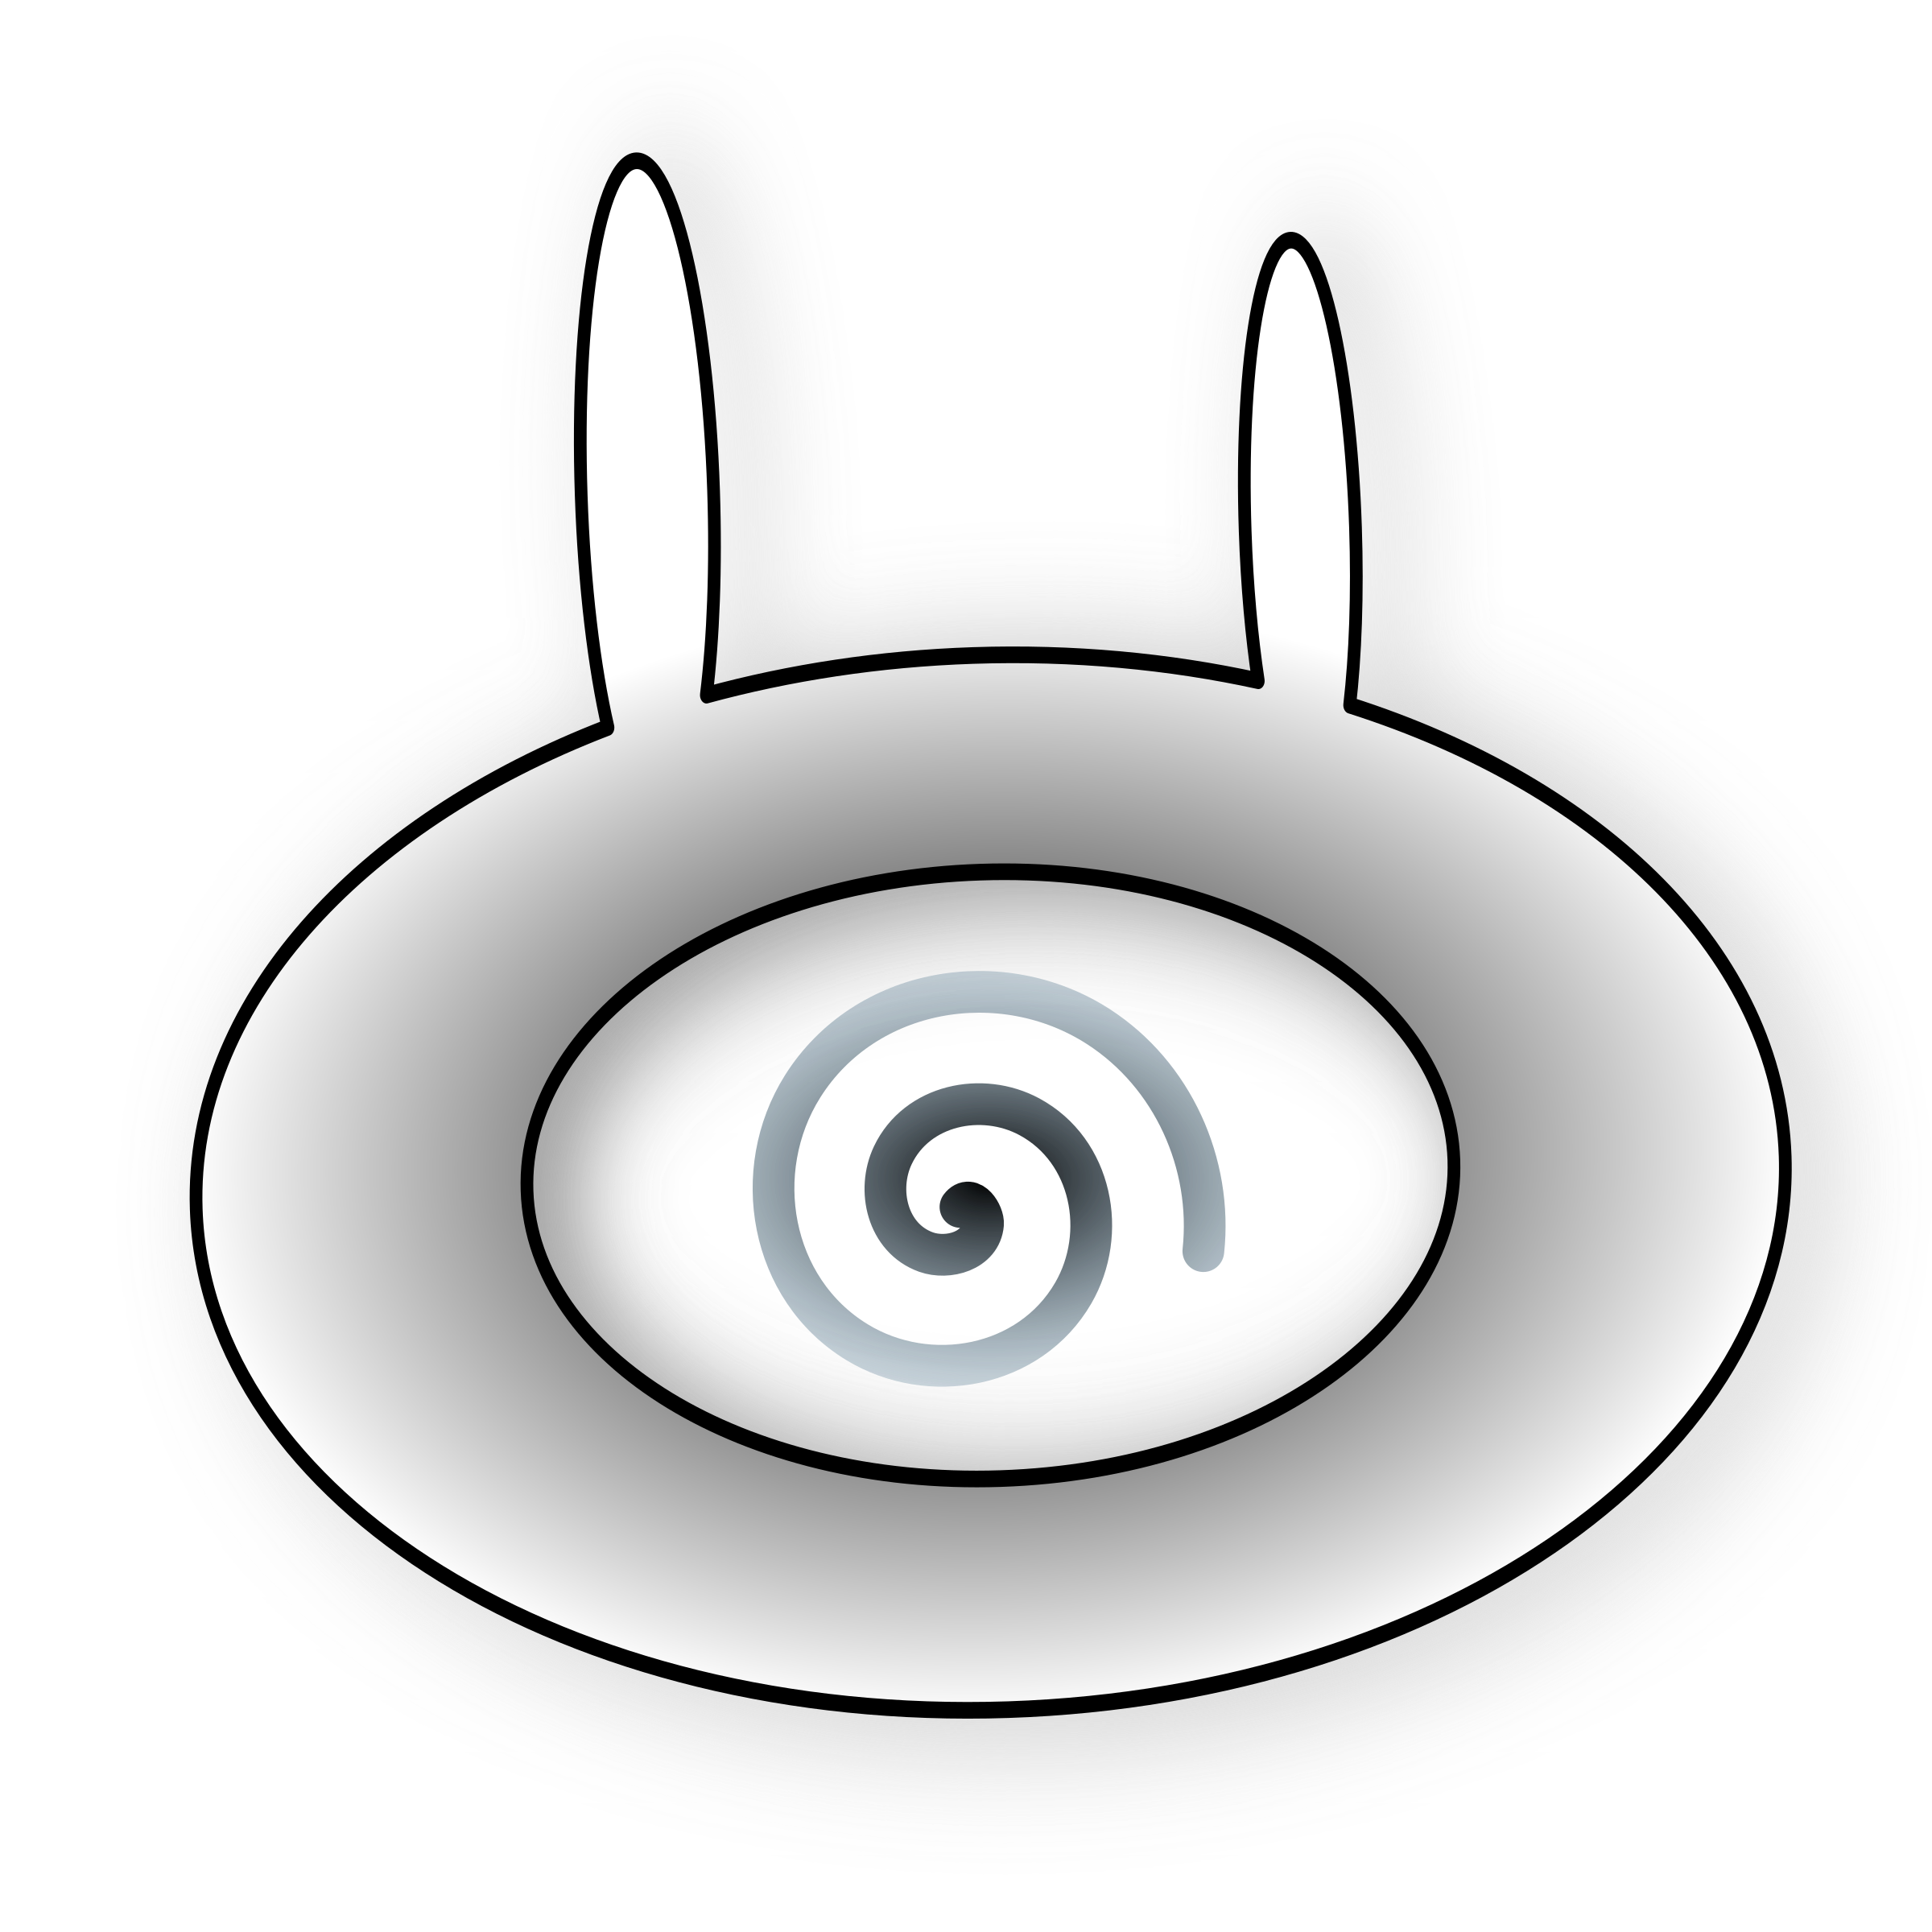 Evil bunny eye by smelly_boots